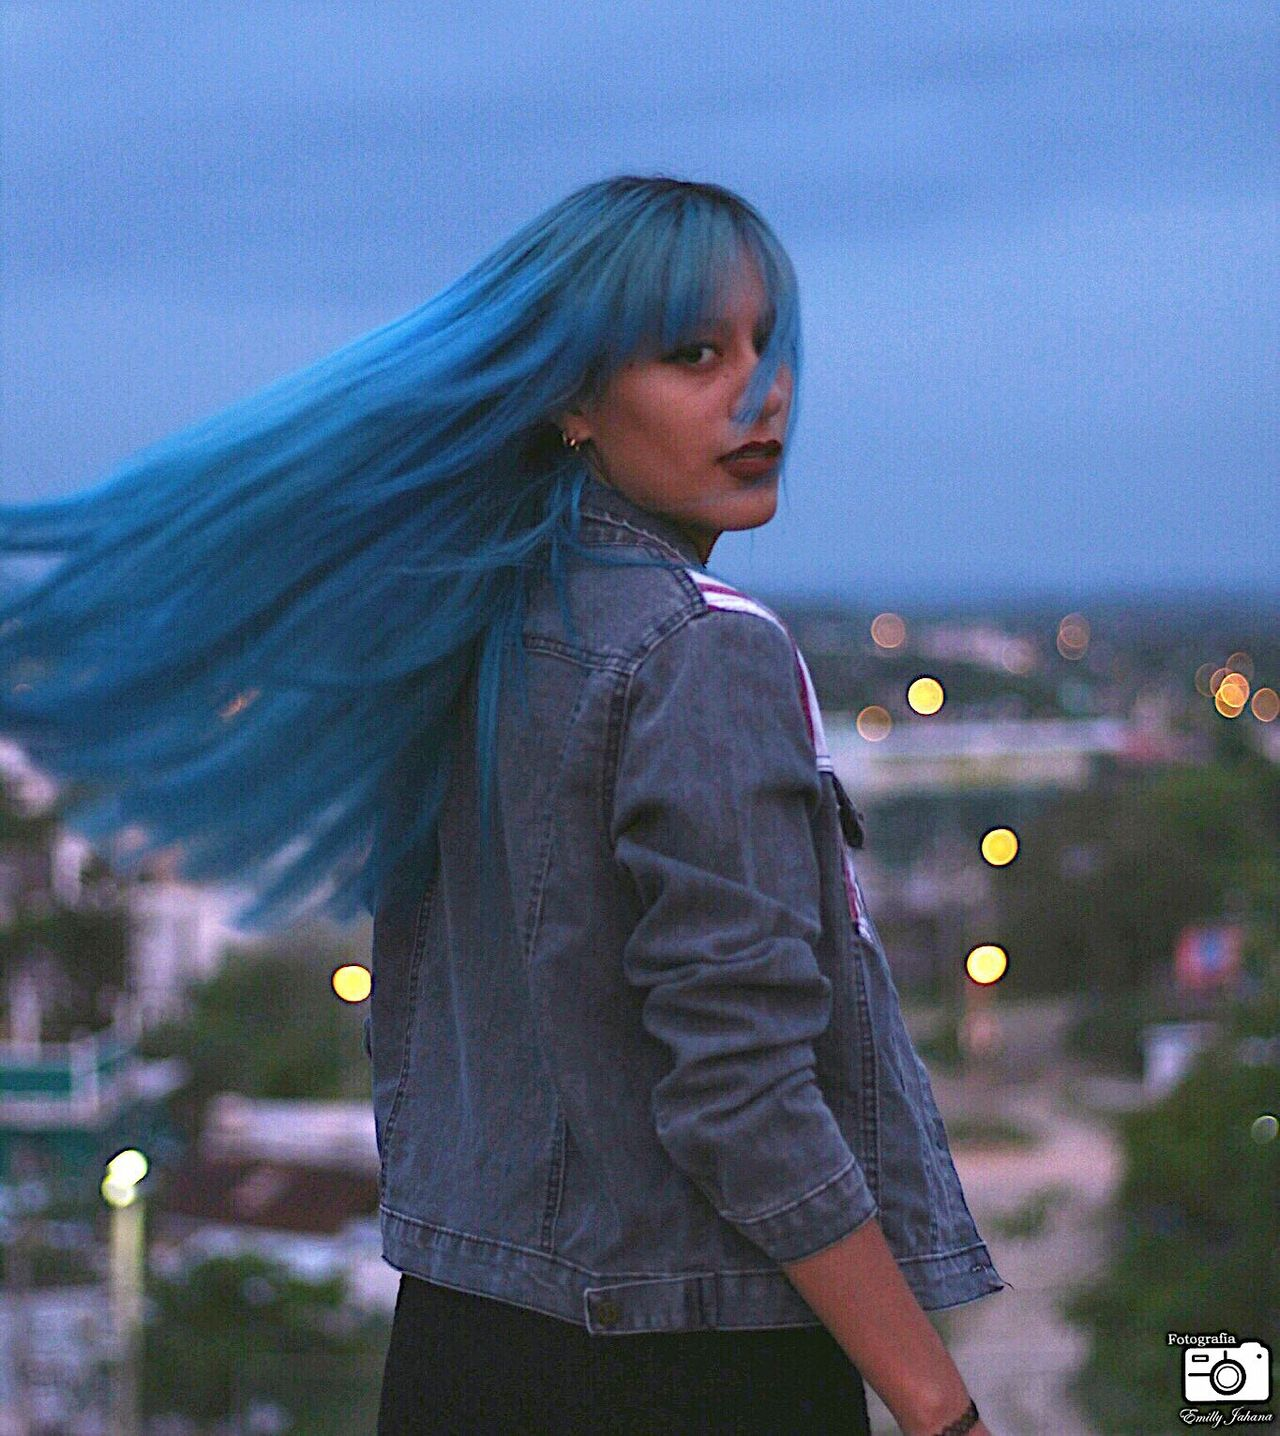 Dramatic hair. Young Adult Long Hair Color Hair Blue Hair ❤ Young Women Woman Model Creative Idea Lights In The City Beautiful Woman Mexico (null)Model Model Pose Pretty Hair